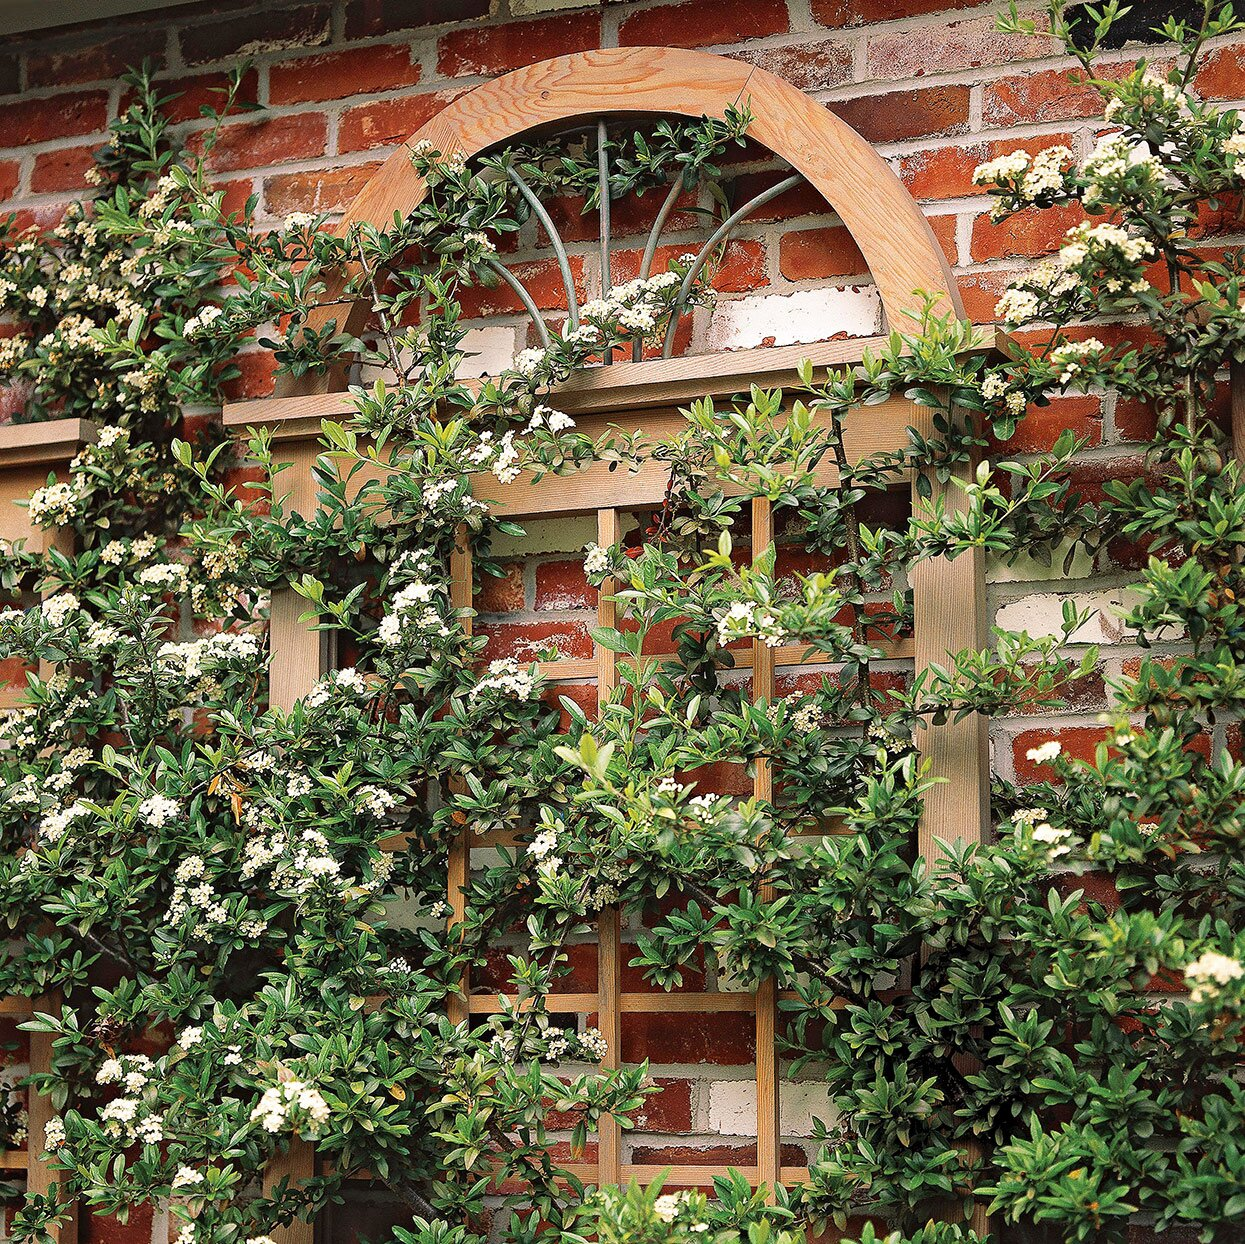 vines on trellis made from old window frame with arched transom